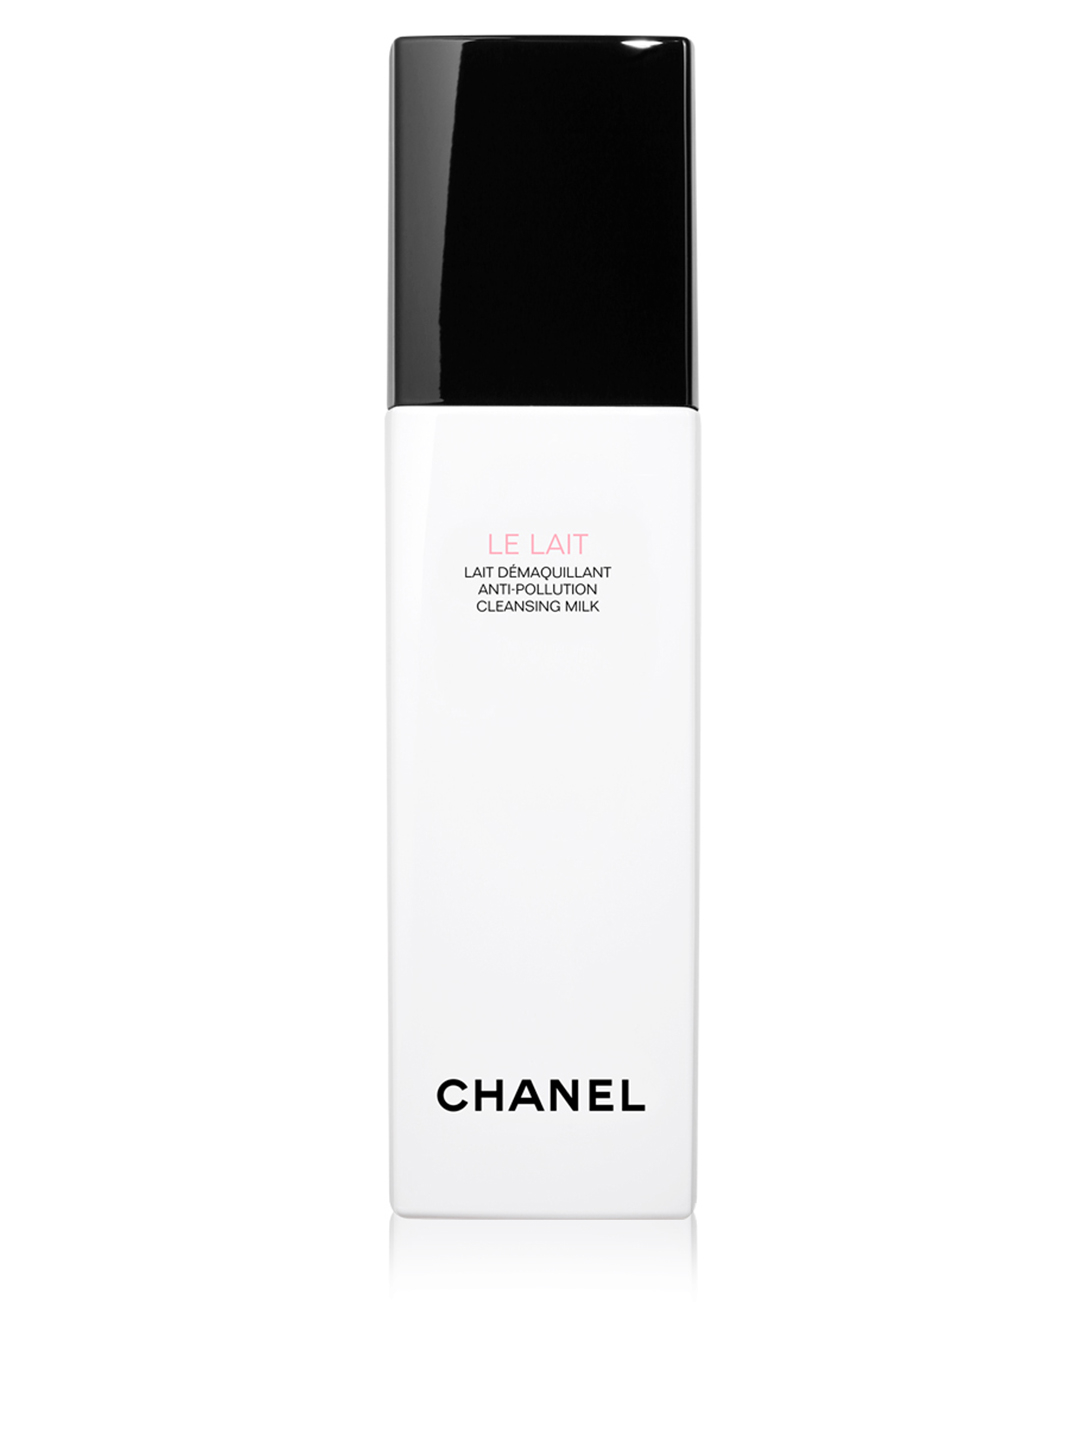 CHANEL Lait démaquillant anti-pollution CHANEL